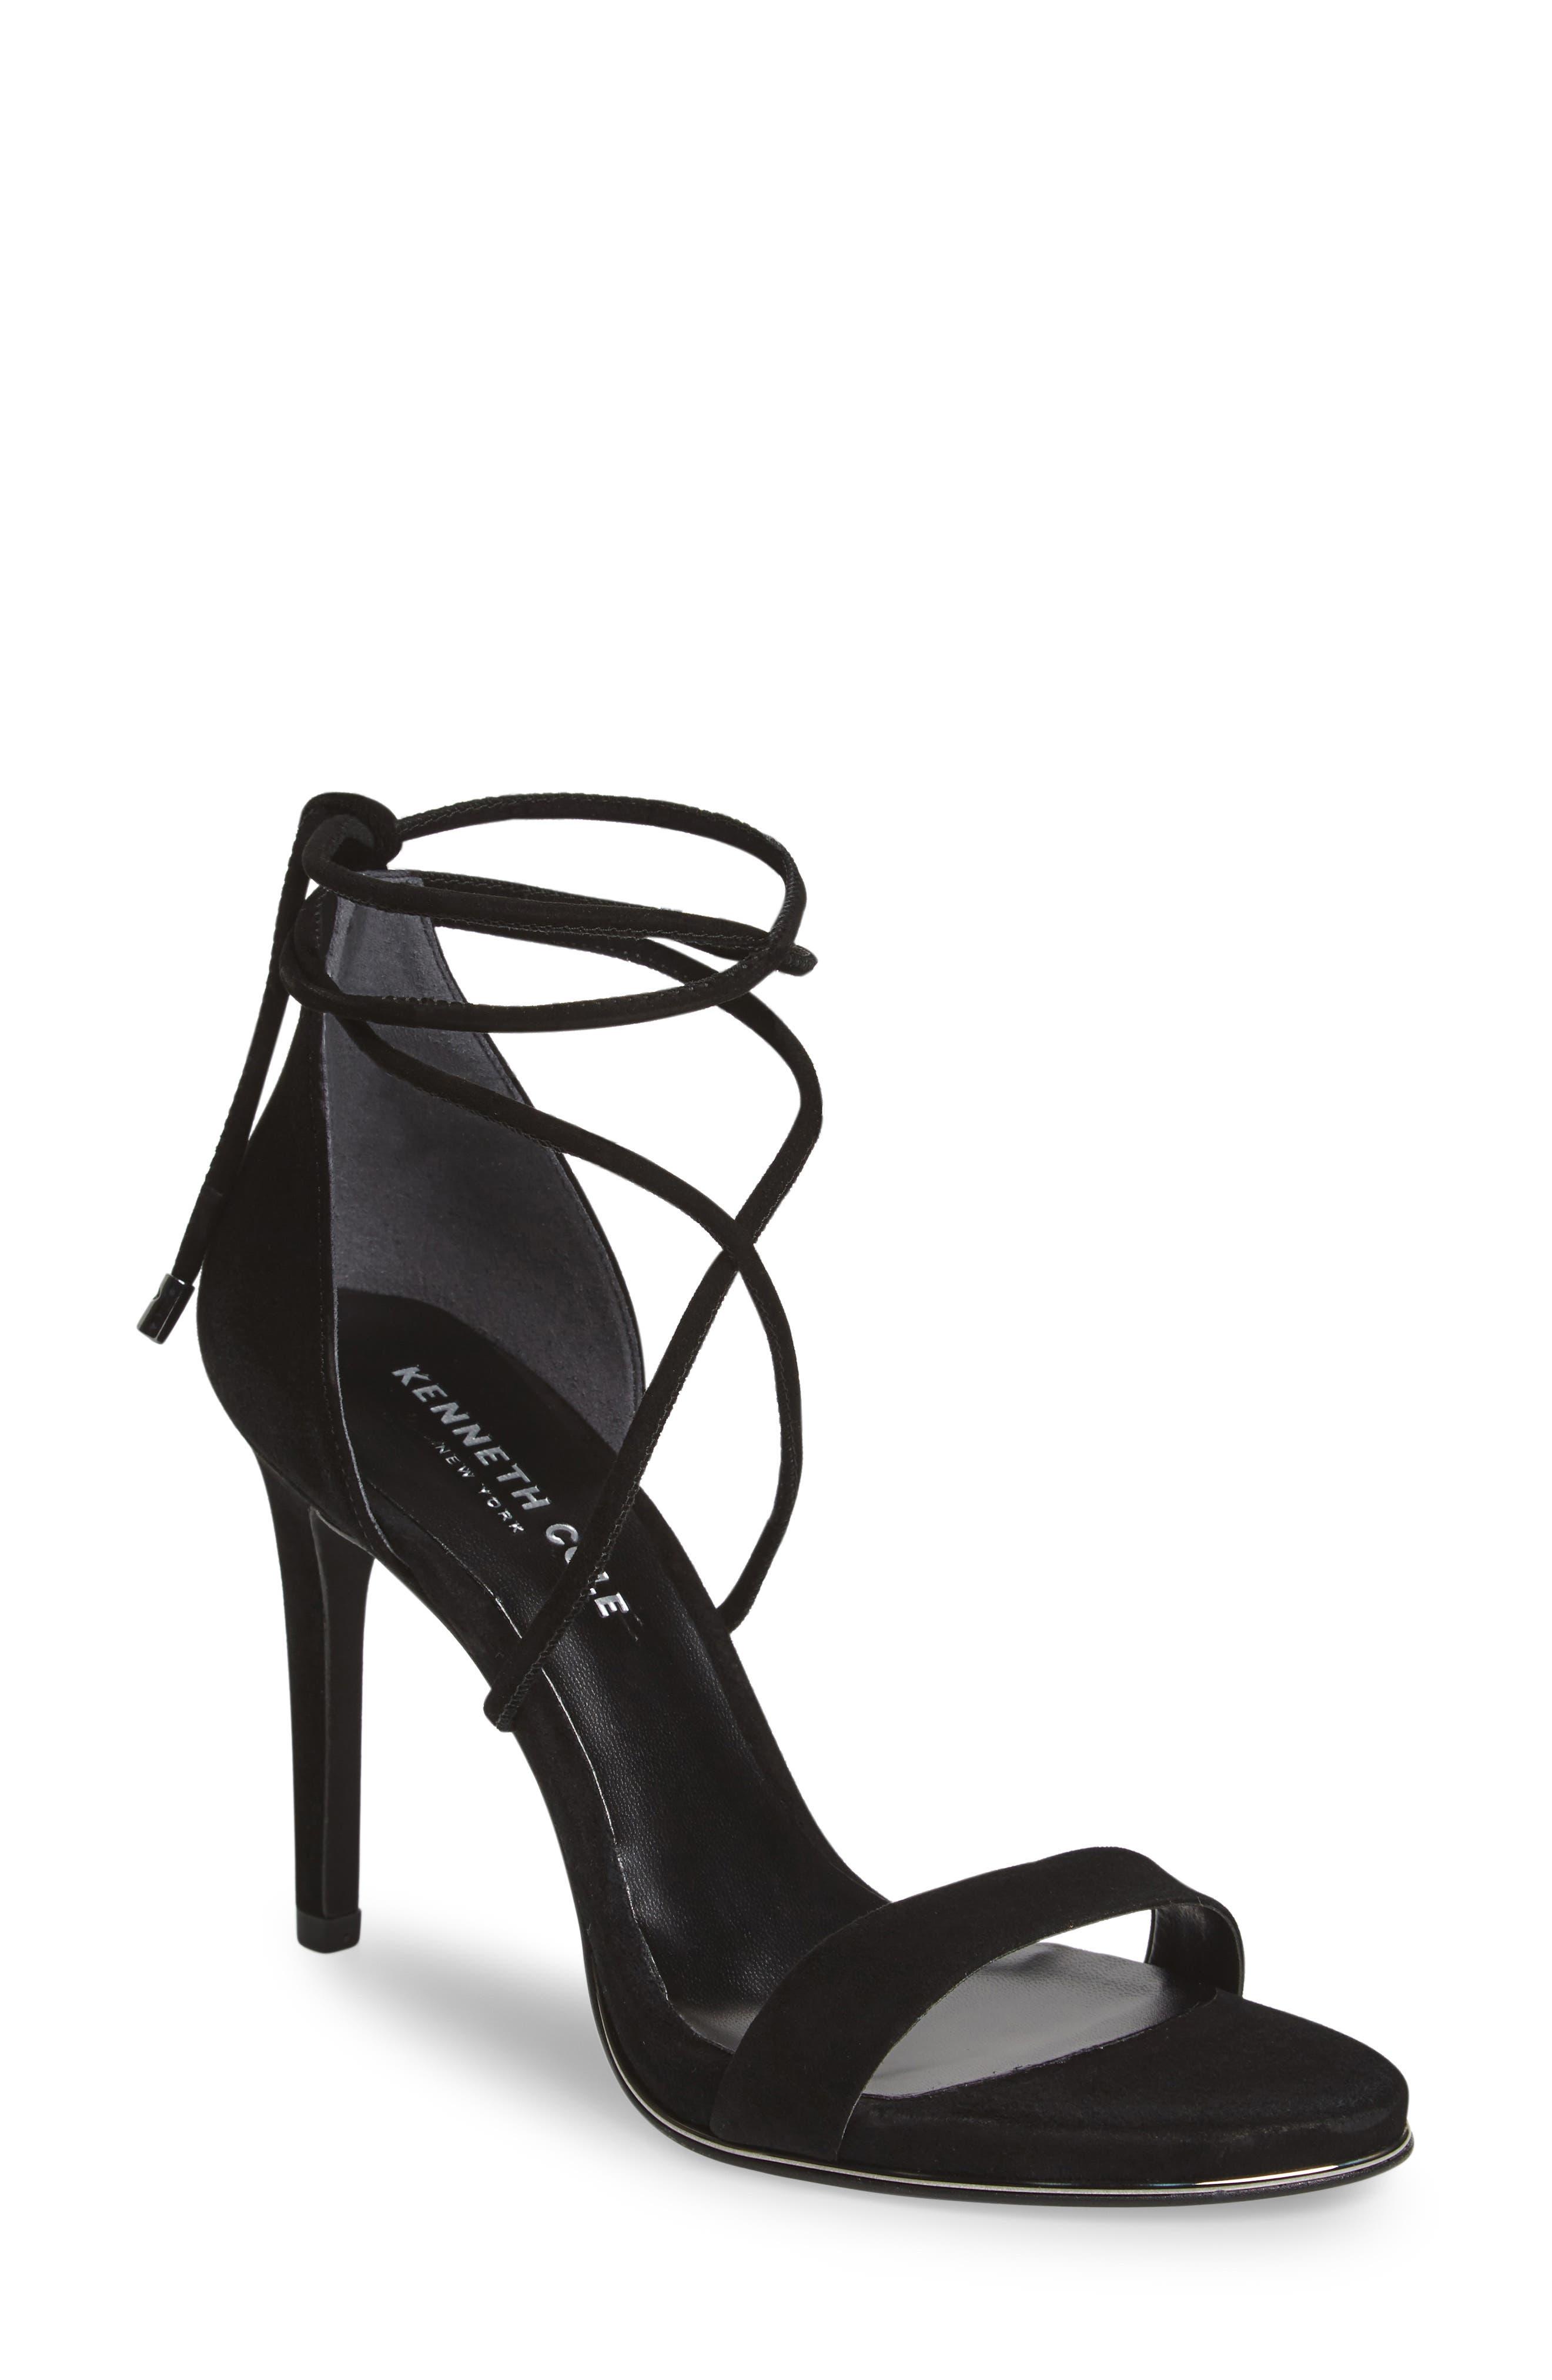 KENNETH COLE NEW YORK, Berry Wraparound Sandal, Main thumbnail 1, color, BLACK SUEDE